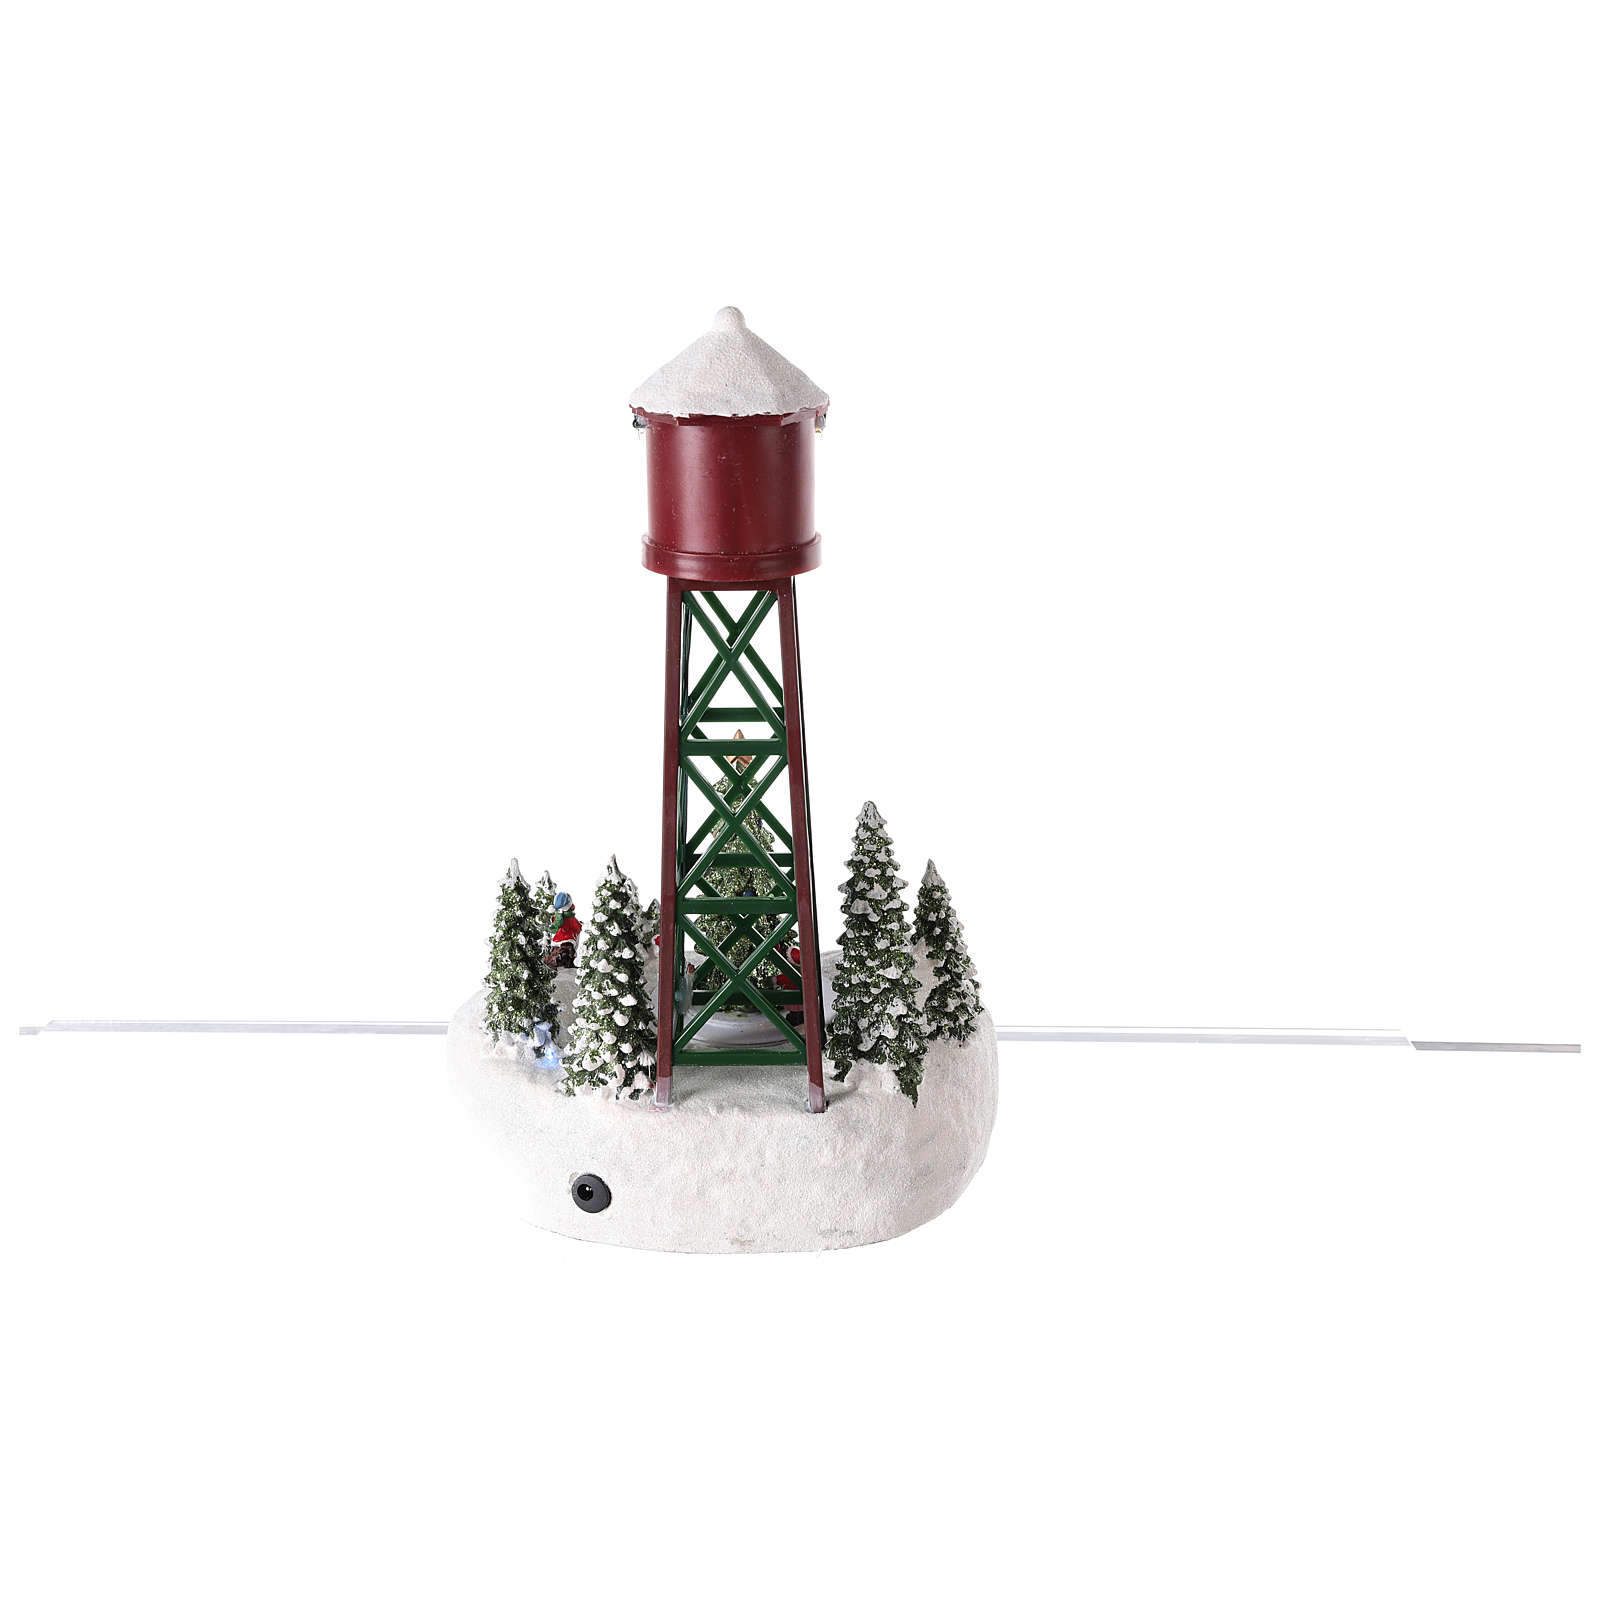 Aqueduct for Christmas village with ice rink and Christmas tree 35x20 3